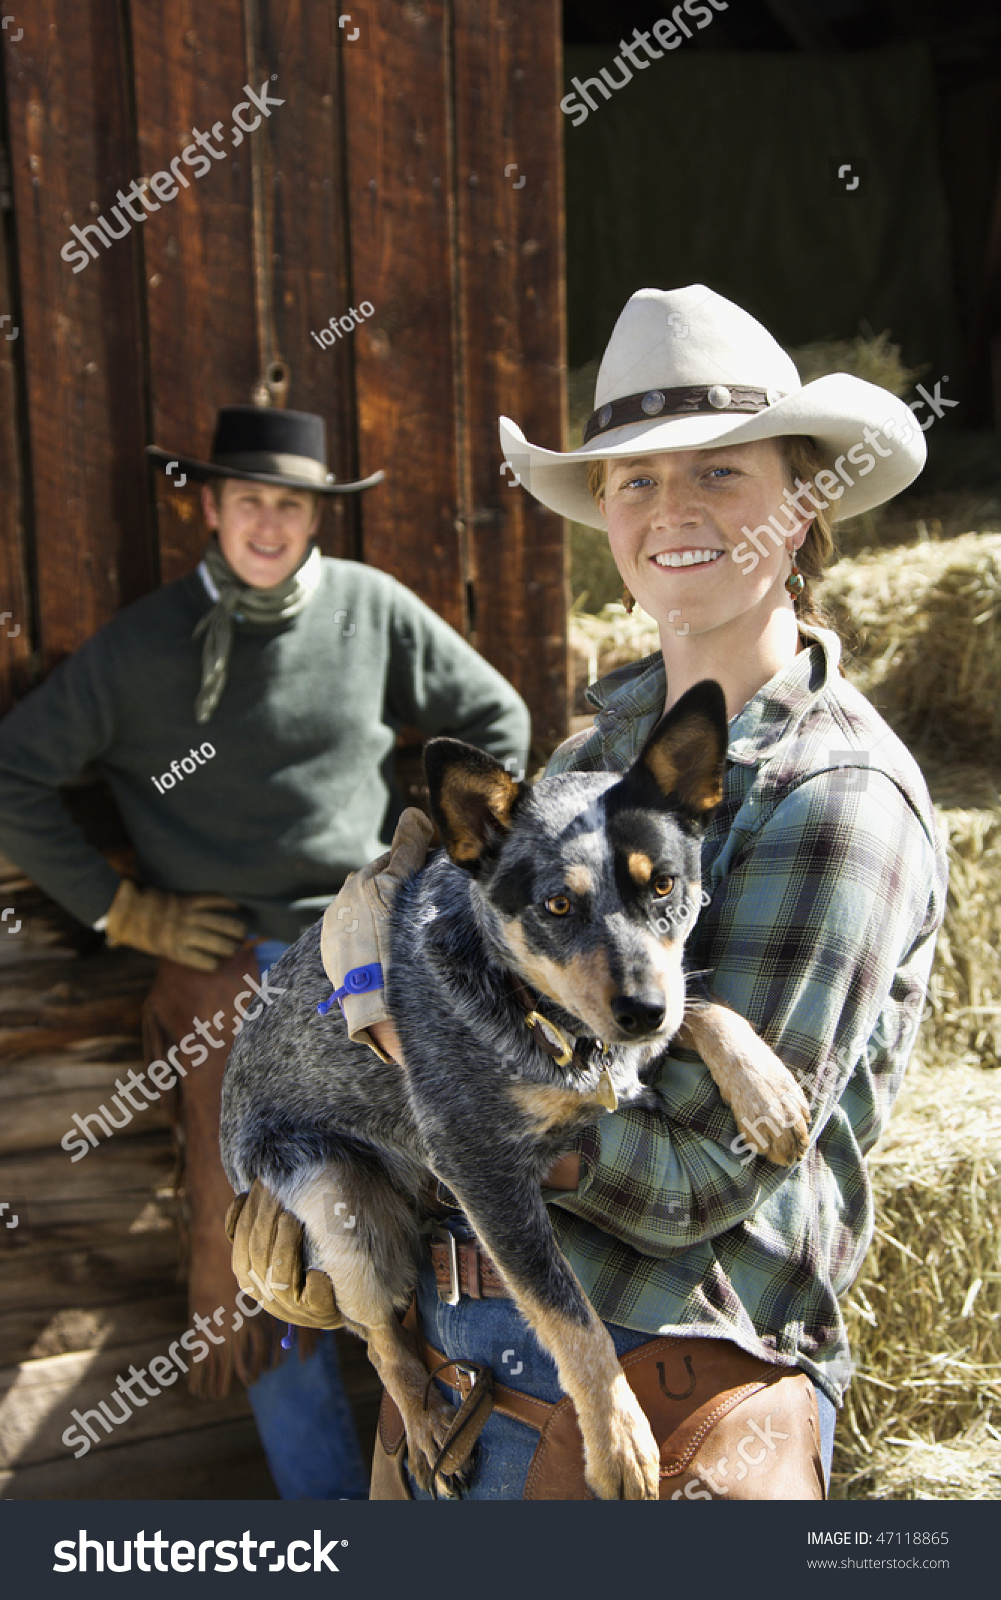 c6f9ade24d64f Attractive young woman wearing a cowboy hat and holding an Australian  Shepherd. A young man is standing in the background. Vertical shot. - Image